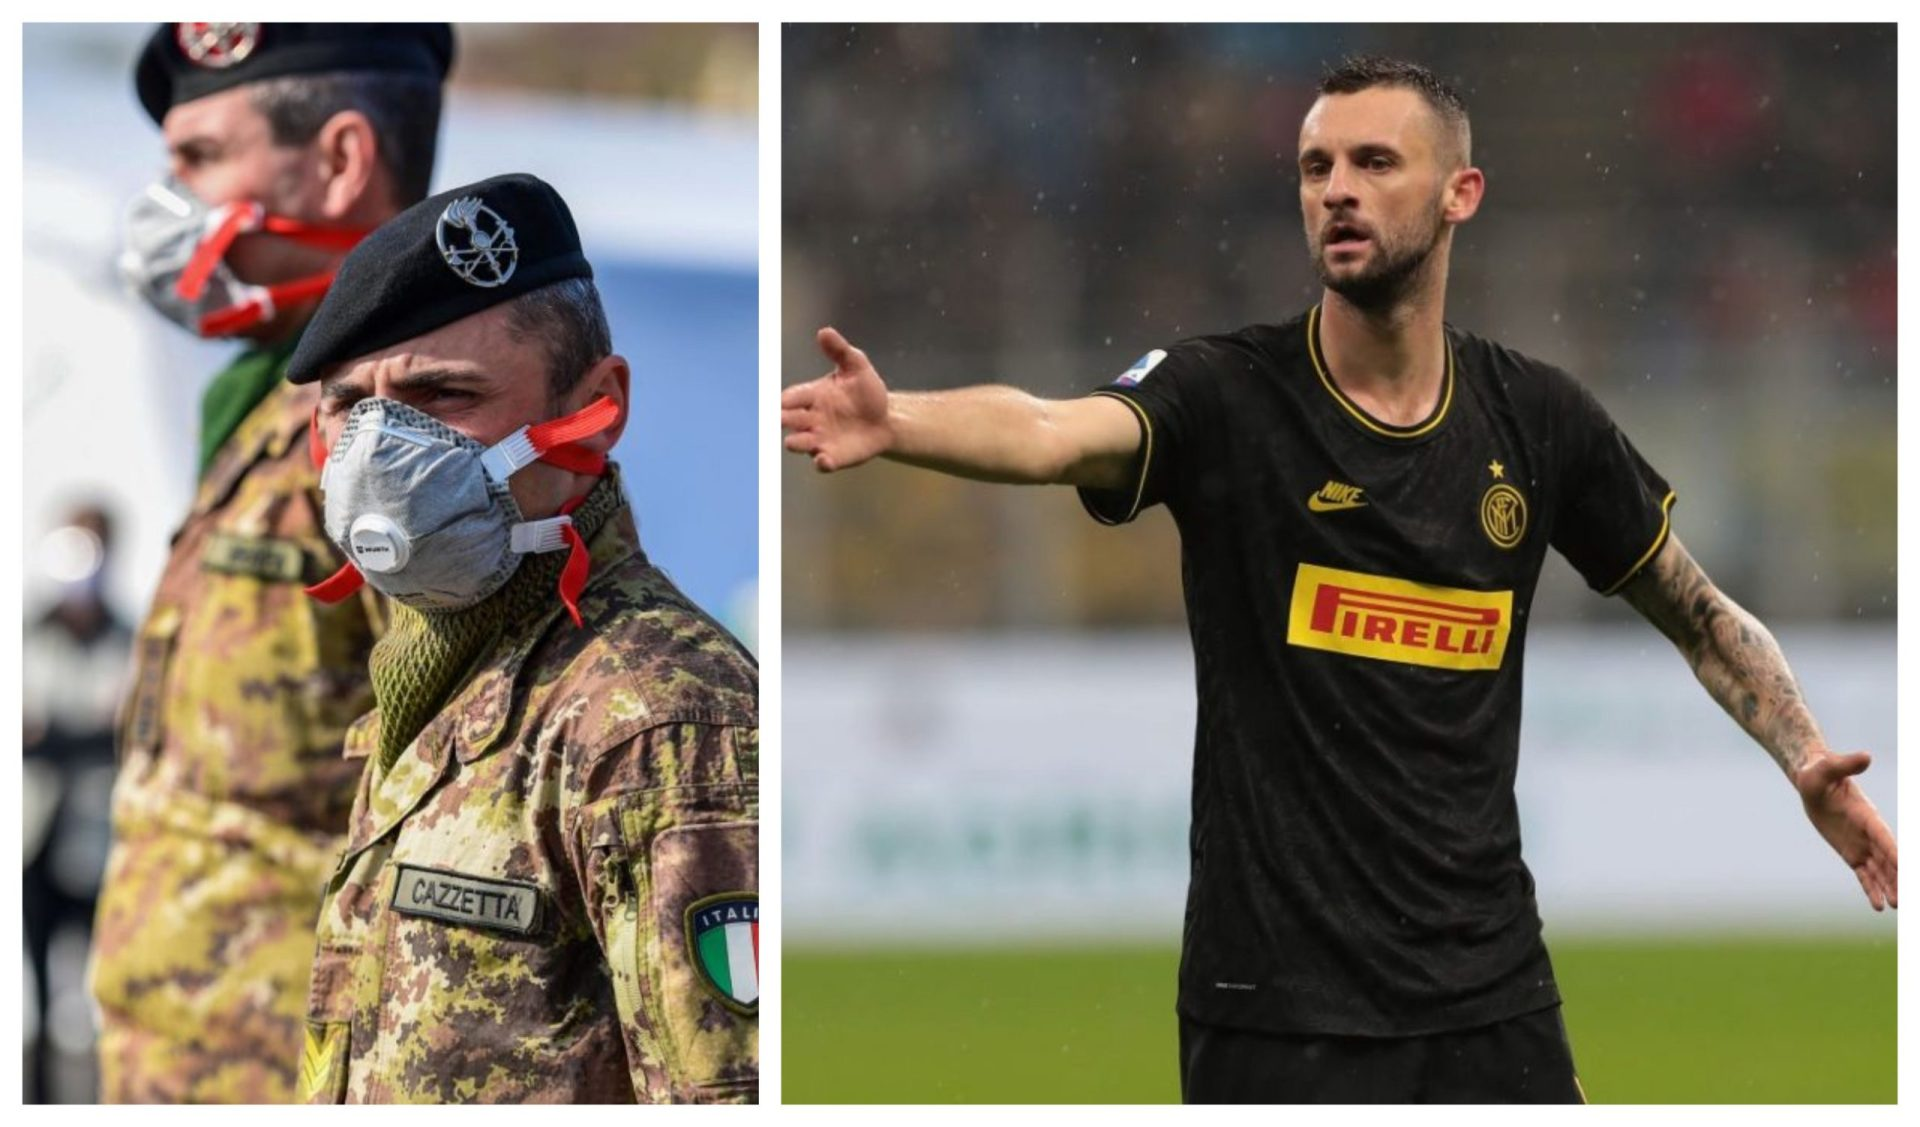 Military intervention required in hospital to calm down Inter Milan's Brozovic - THE SPORTS ROOM